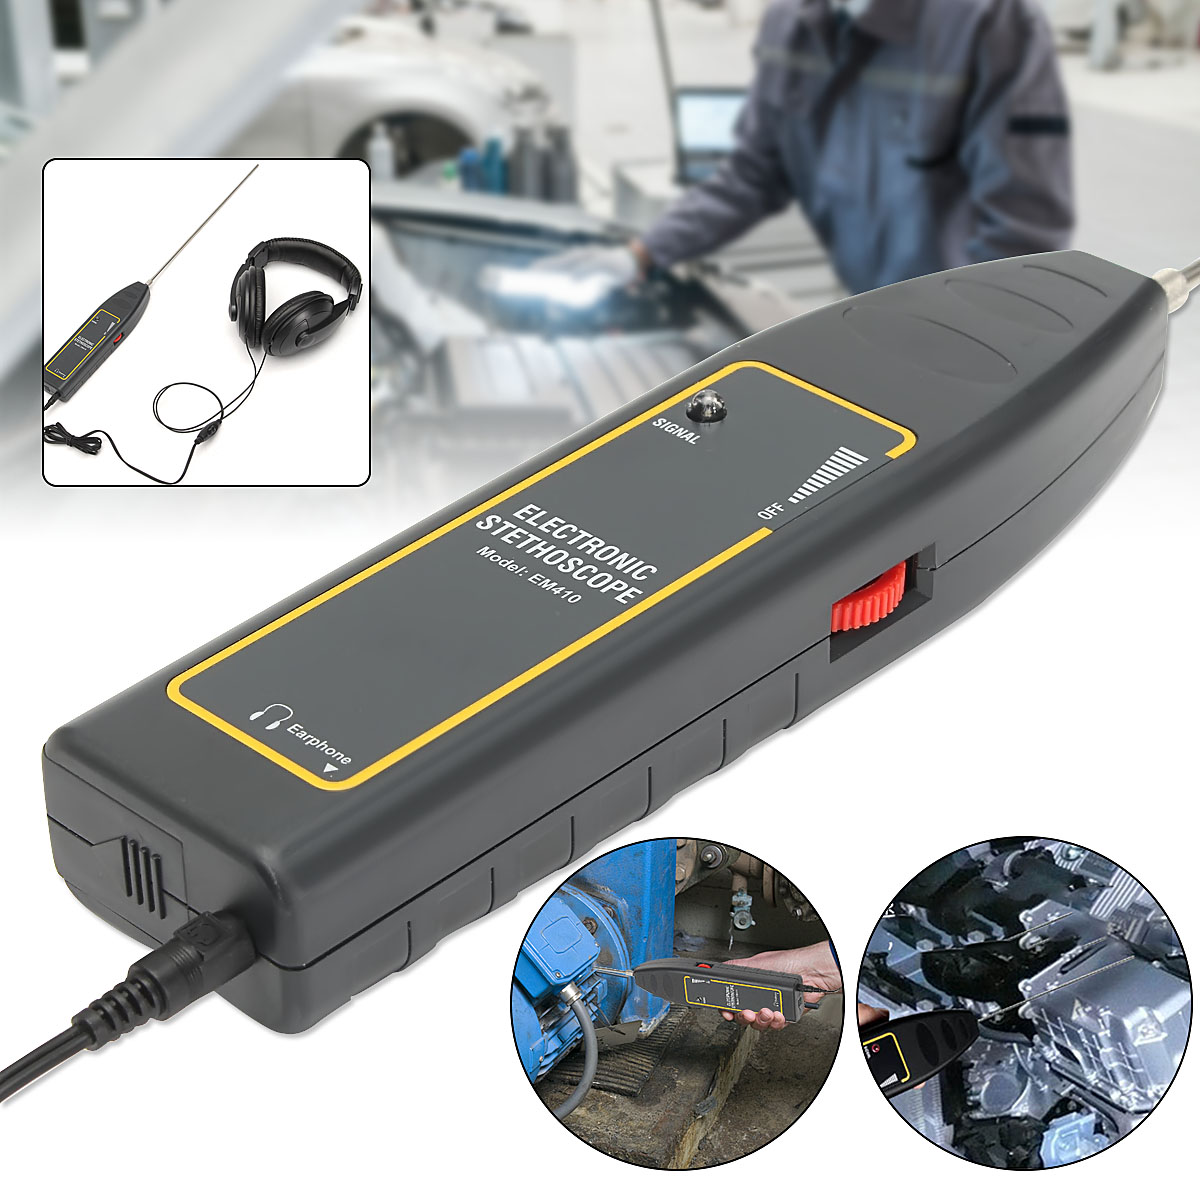 100 db Electronic Stethoscope Gas Leak detector Transmitter Detects Air Water Dust Leak Indicator for car,tank,ect.100 db Electronic Stethoscope Gas Leak detector Transmitter Detects Air Water Dust Leak Indicator for car,tank,ect.